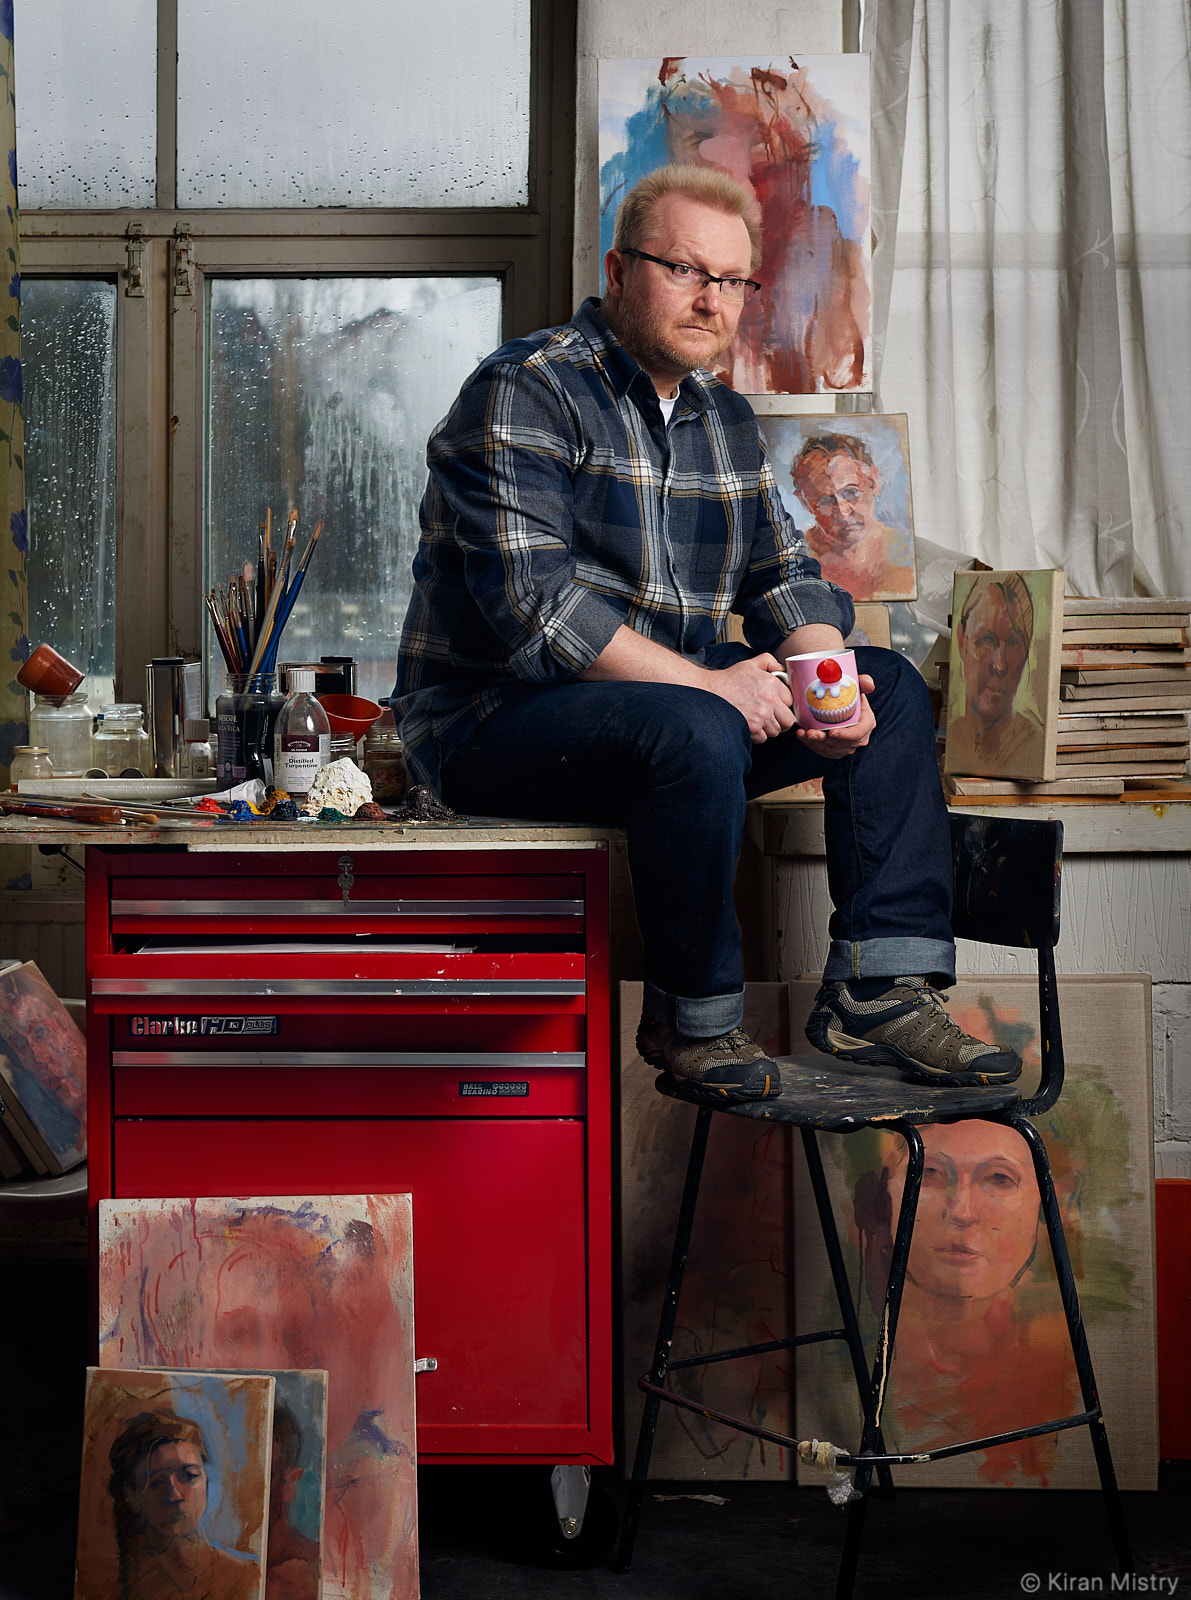 Portrait of artist Andrew Parker in studio surrounded by paintings